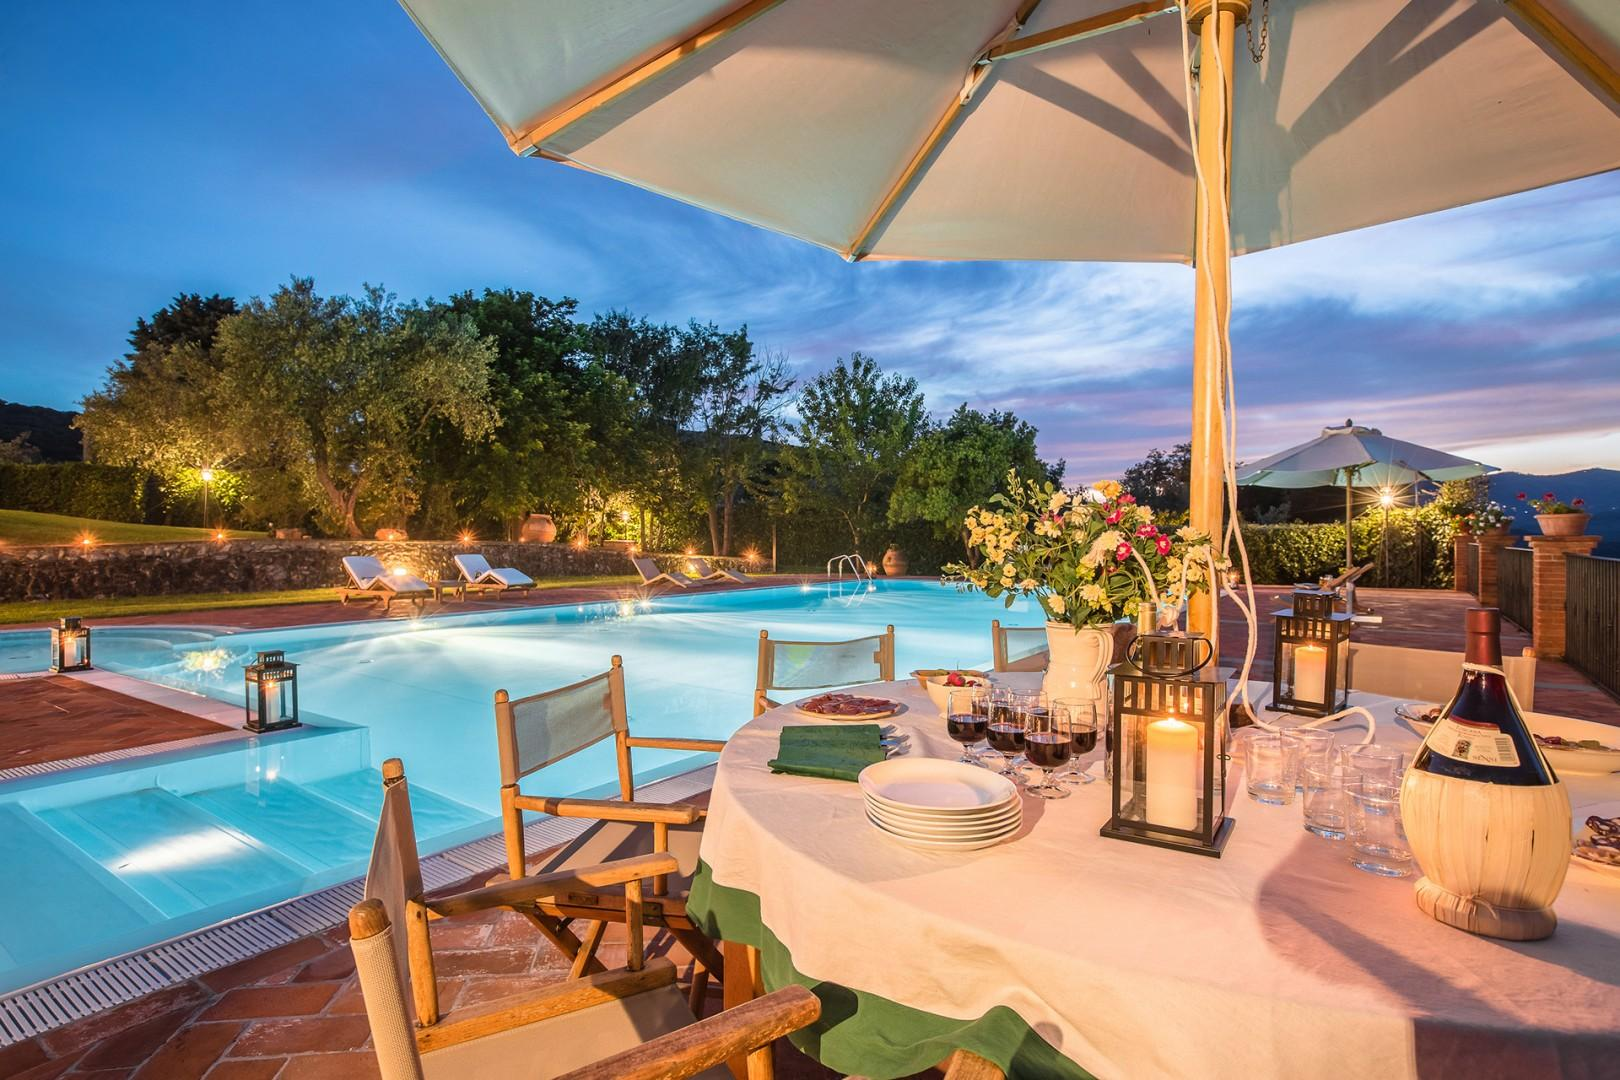 Al fresco dining in this beautiful poolside setting.